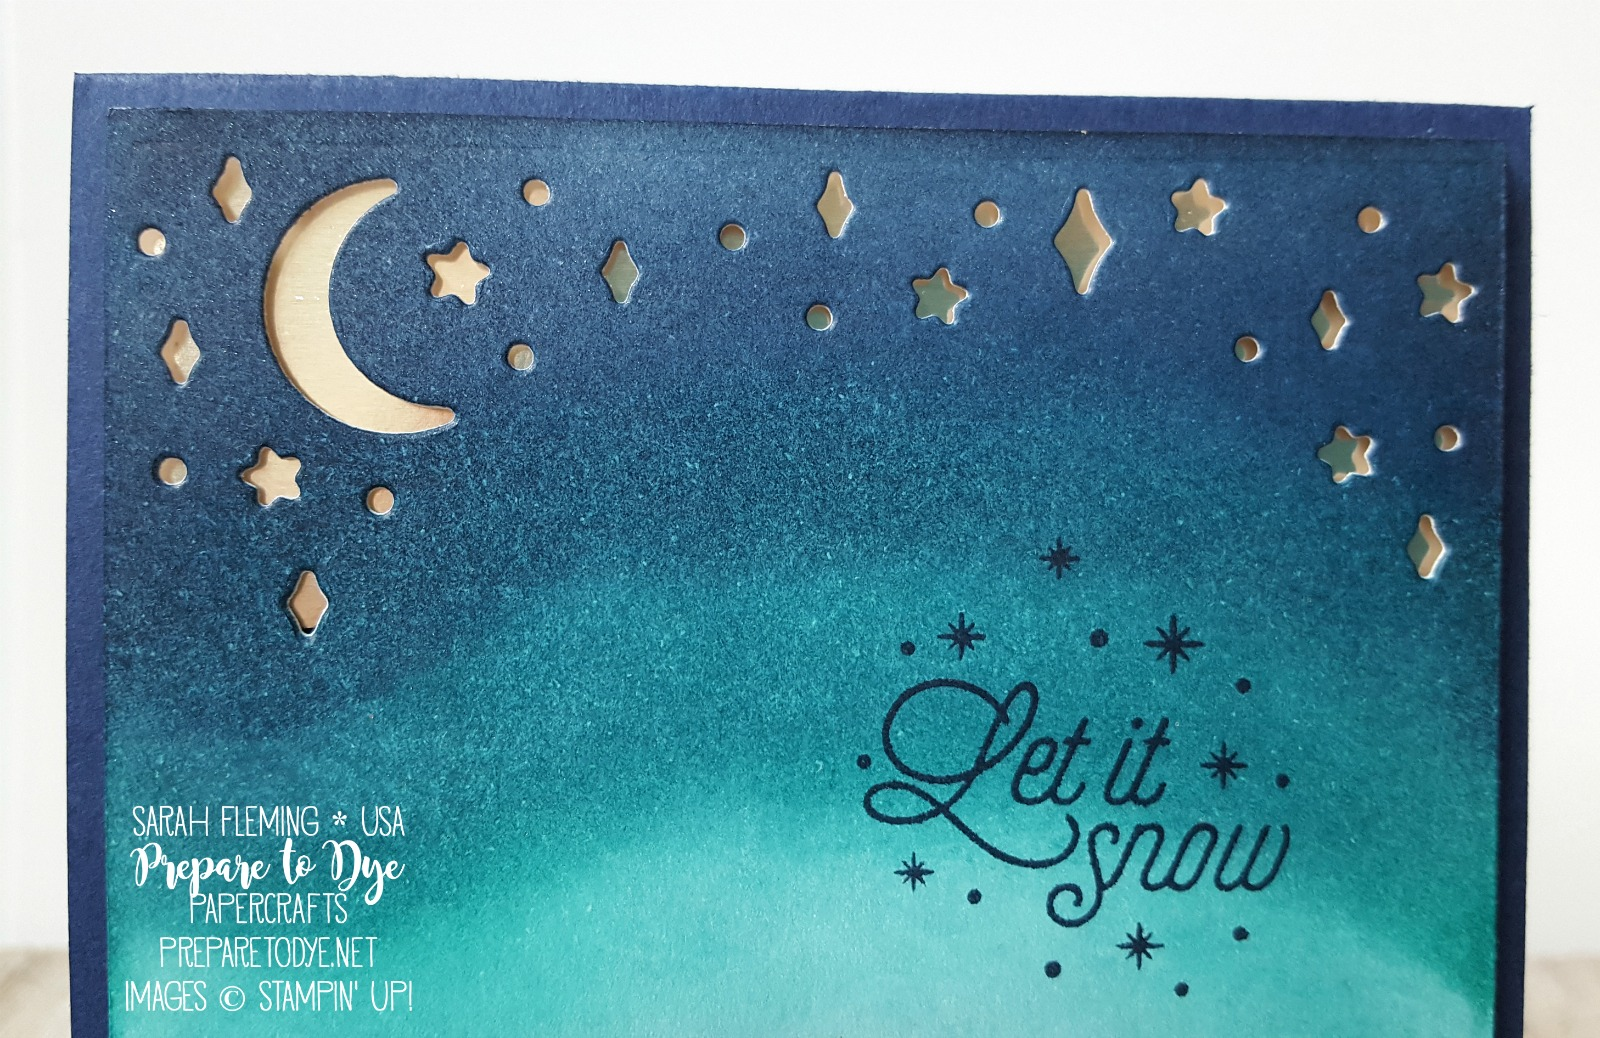 Stampin' Up! Card Front Builder Thinlits dies, Merry Little Labels stamps, Champagne Foil Sheets, Embossing Paste - sponged night time sky - handmade Christmas card - Sarah Fleming - Prepare to Dye Papercrafts - #GDP101